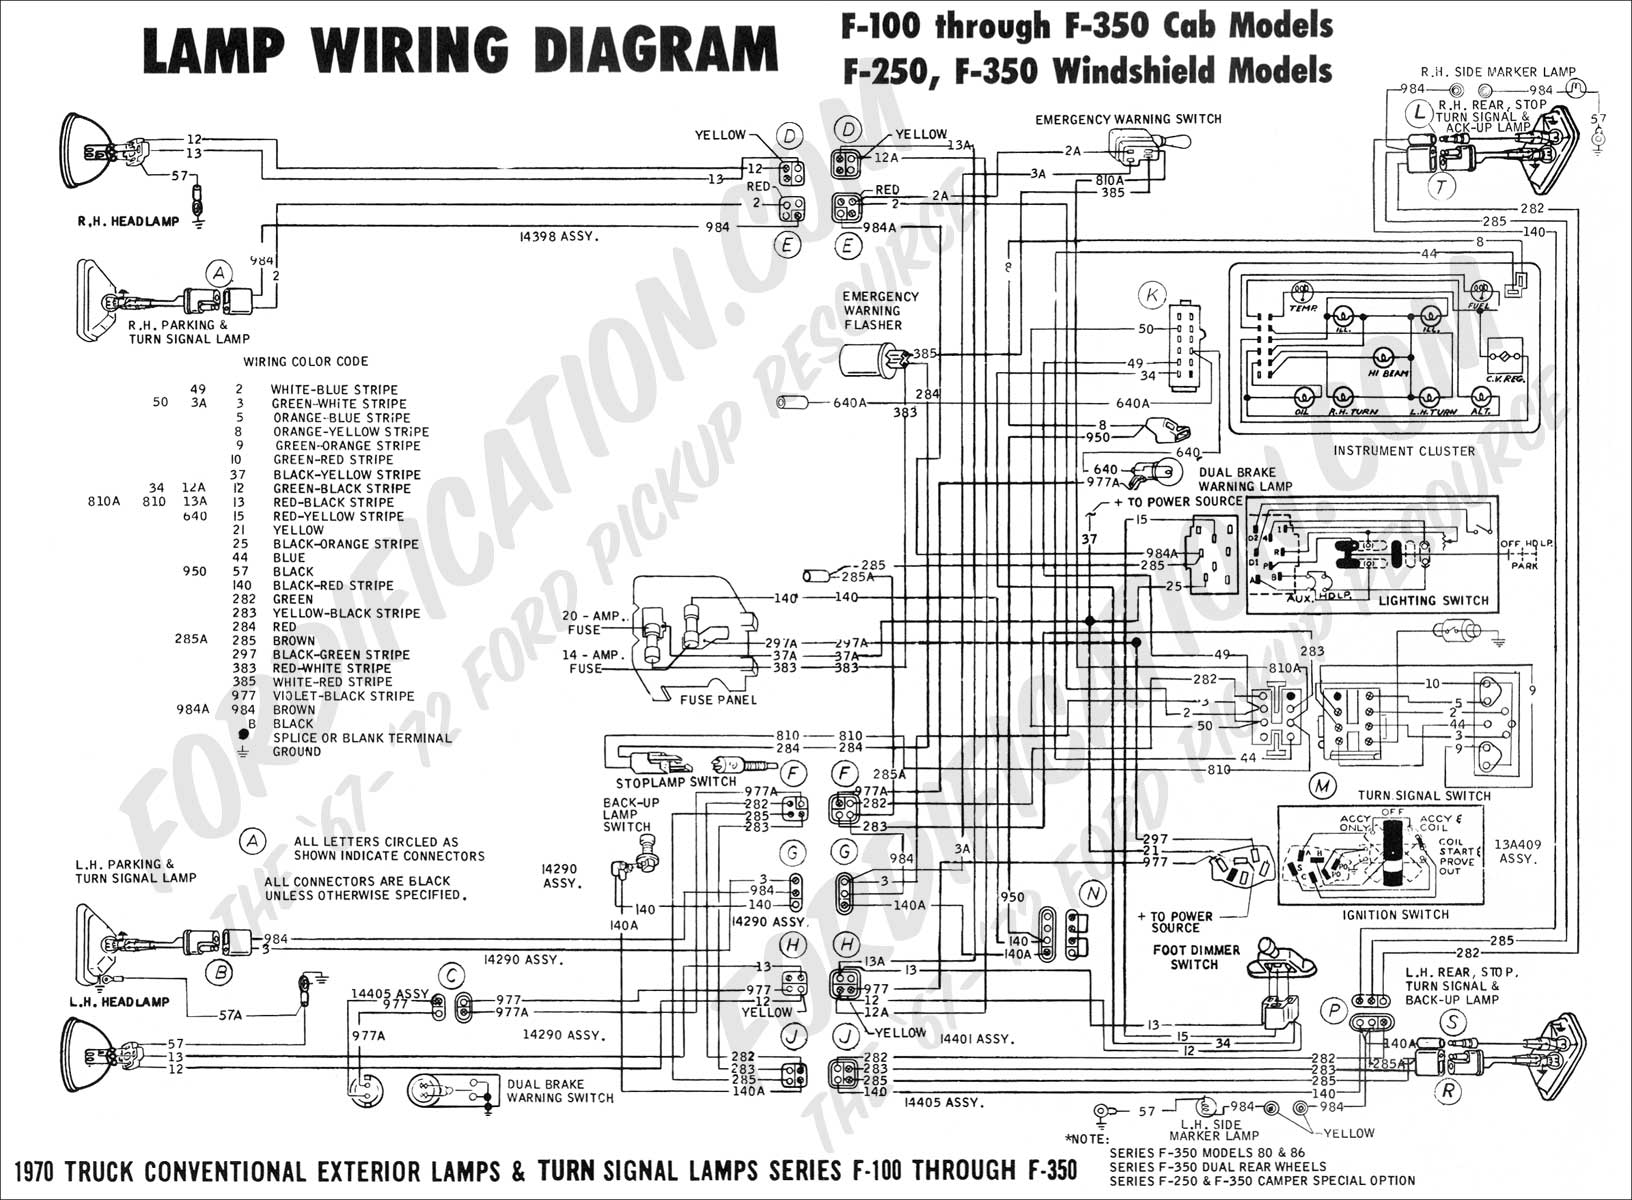 1972 Ford Truck Wiring Diagram Schemes 85 Chevy Elcamino 1970 F100 Opinions About U2022 2001 Diagrams